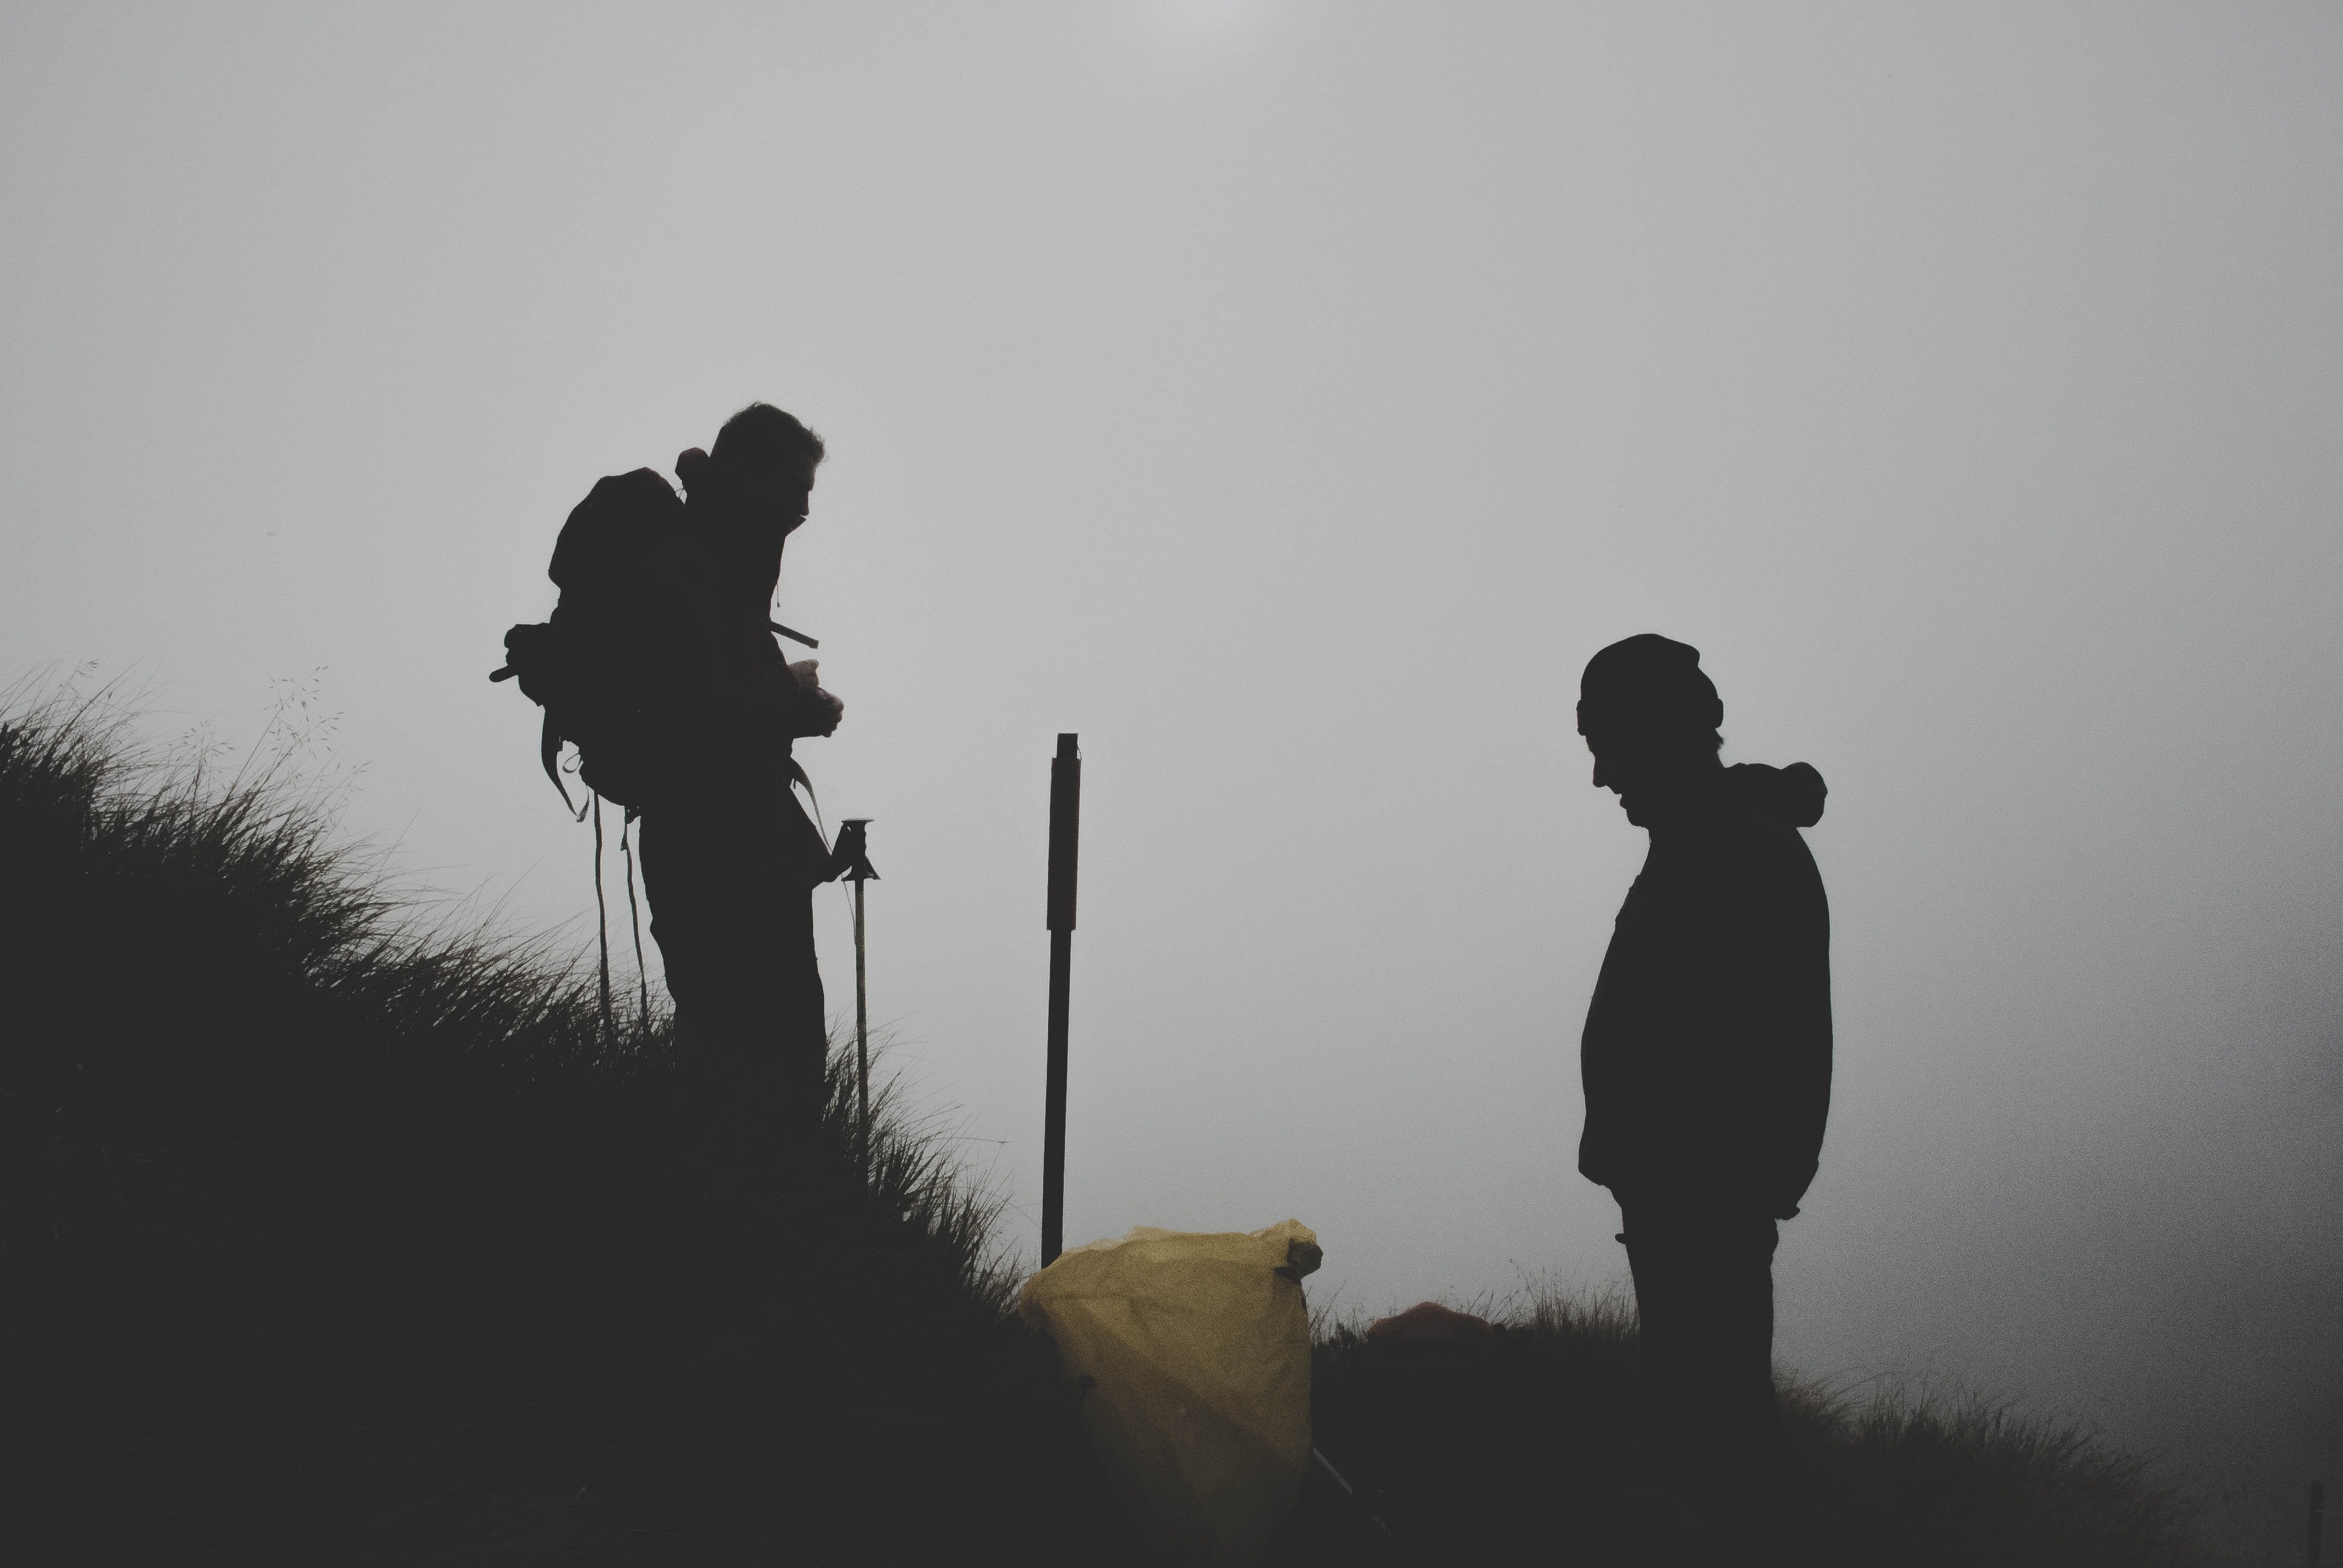 Silhouette of two hikers on a slope against the gray background in Mount Aspiring National Park.